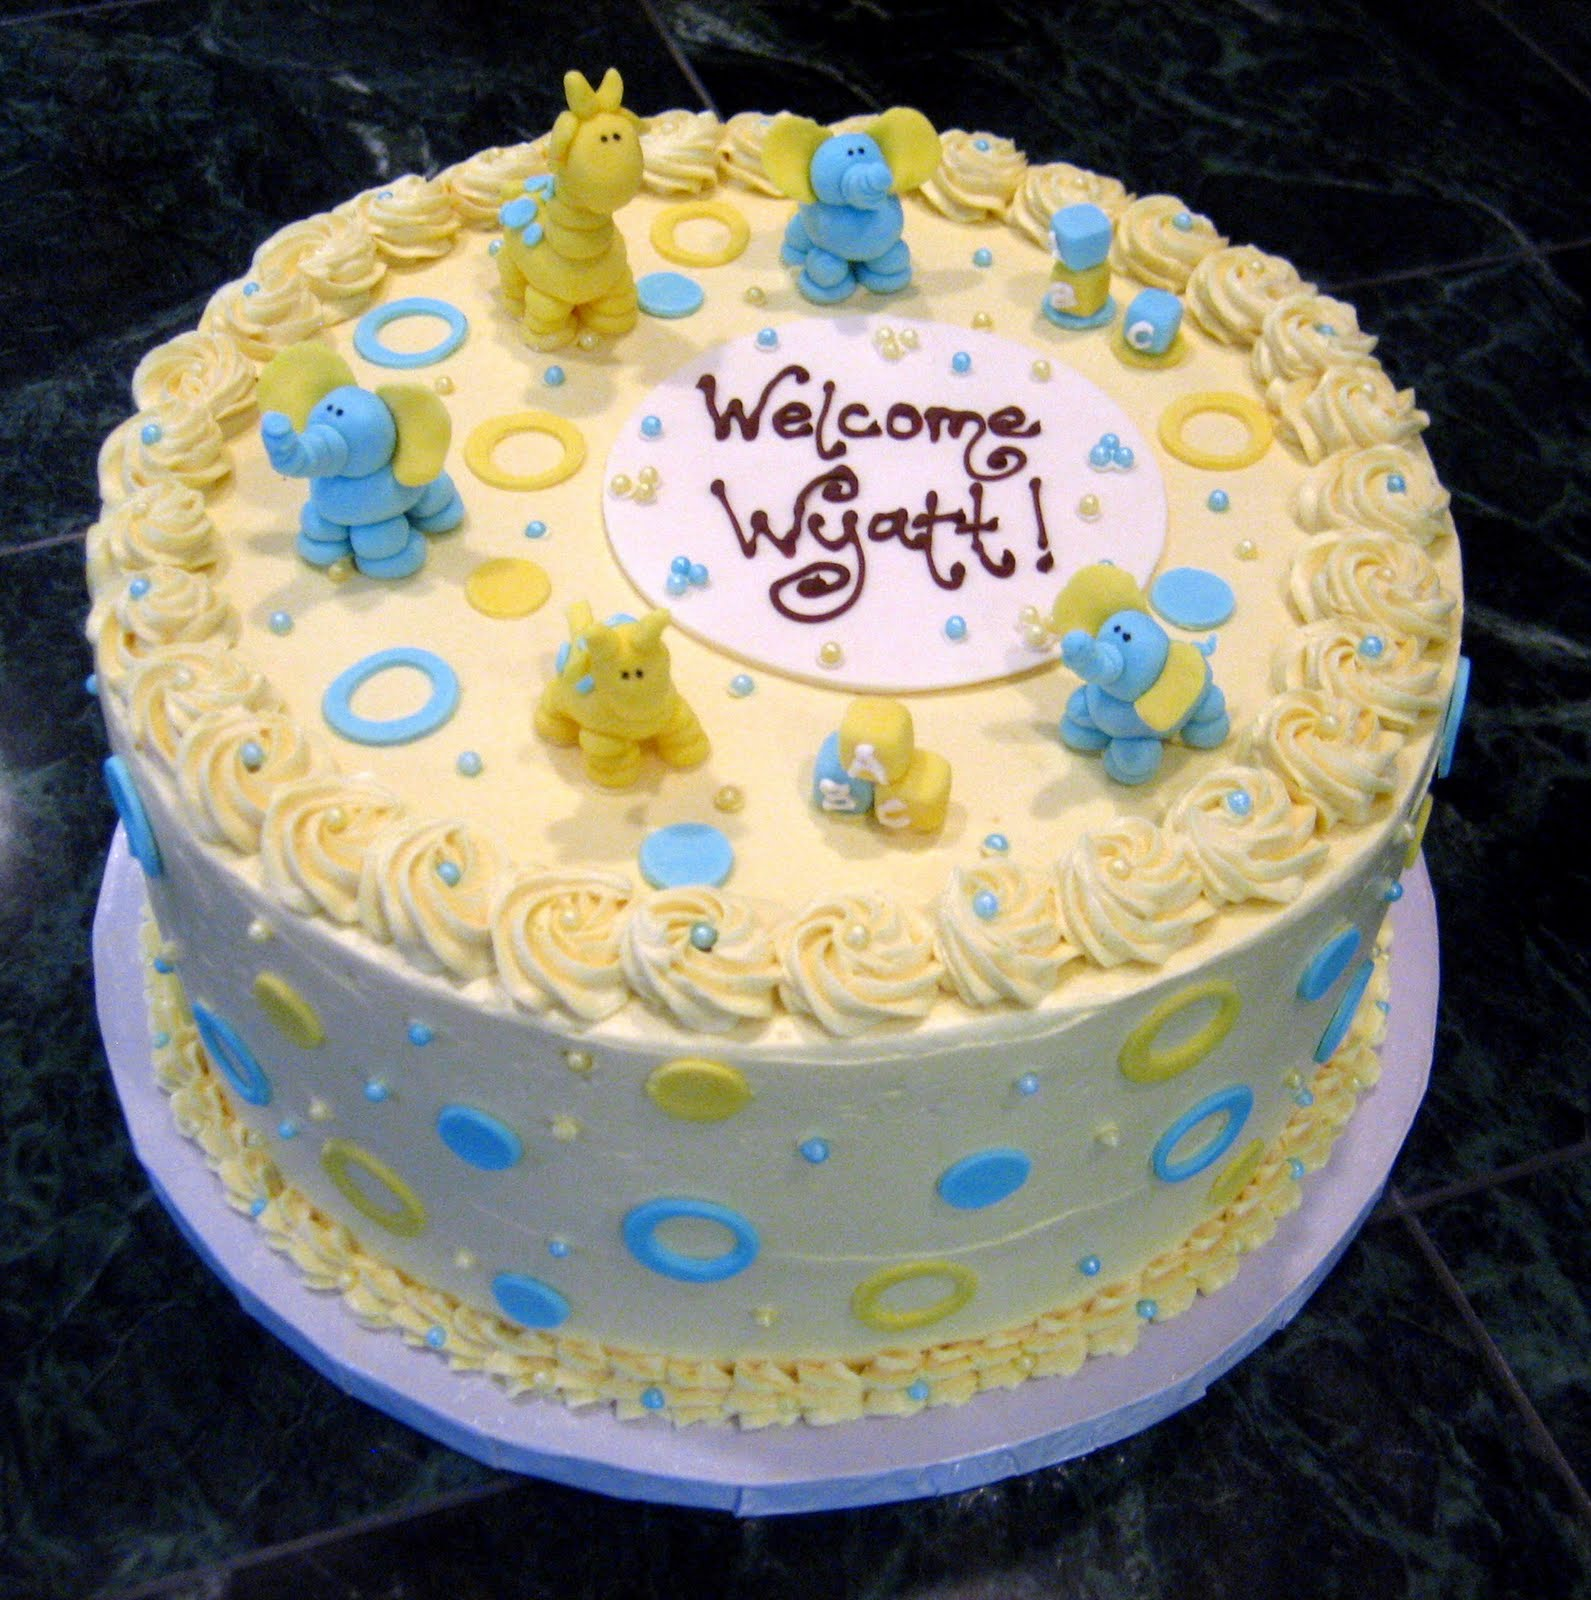 Easy Cake Decorating Baby Shower : Jillicious Discoveries: Baby Shower Cake